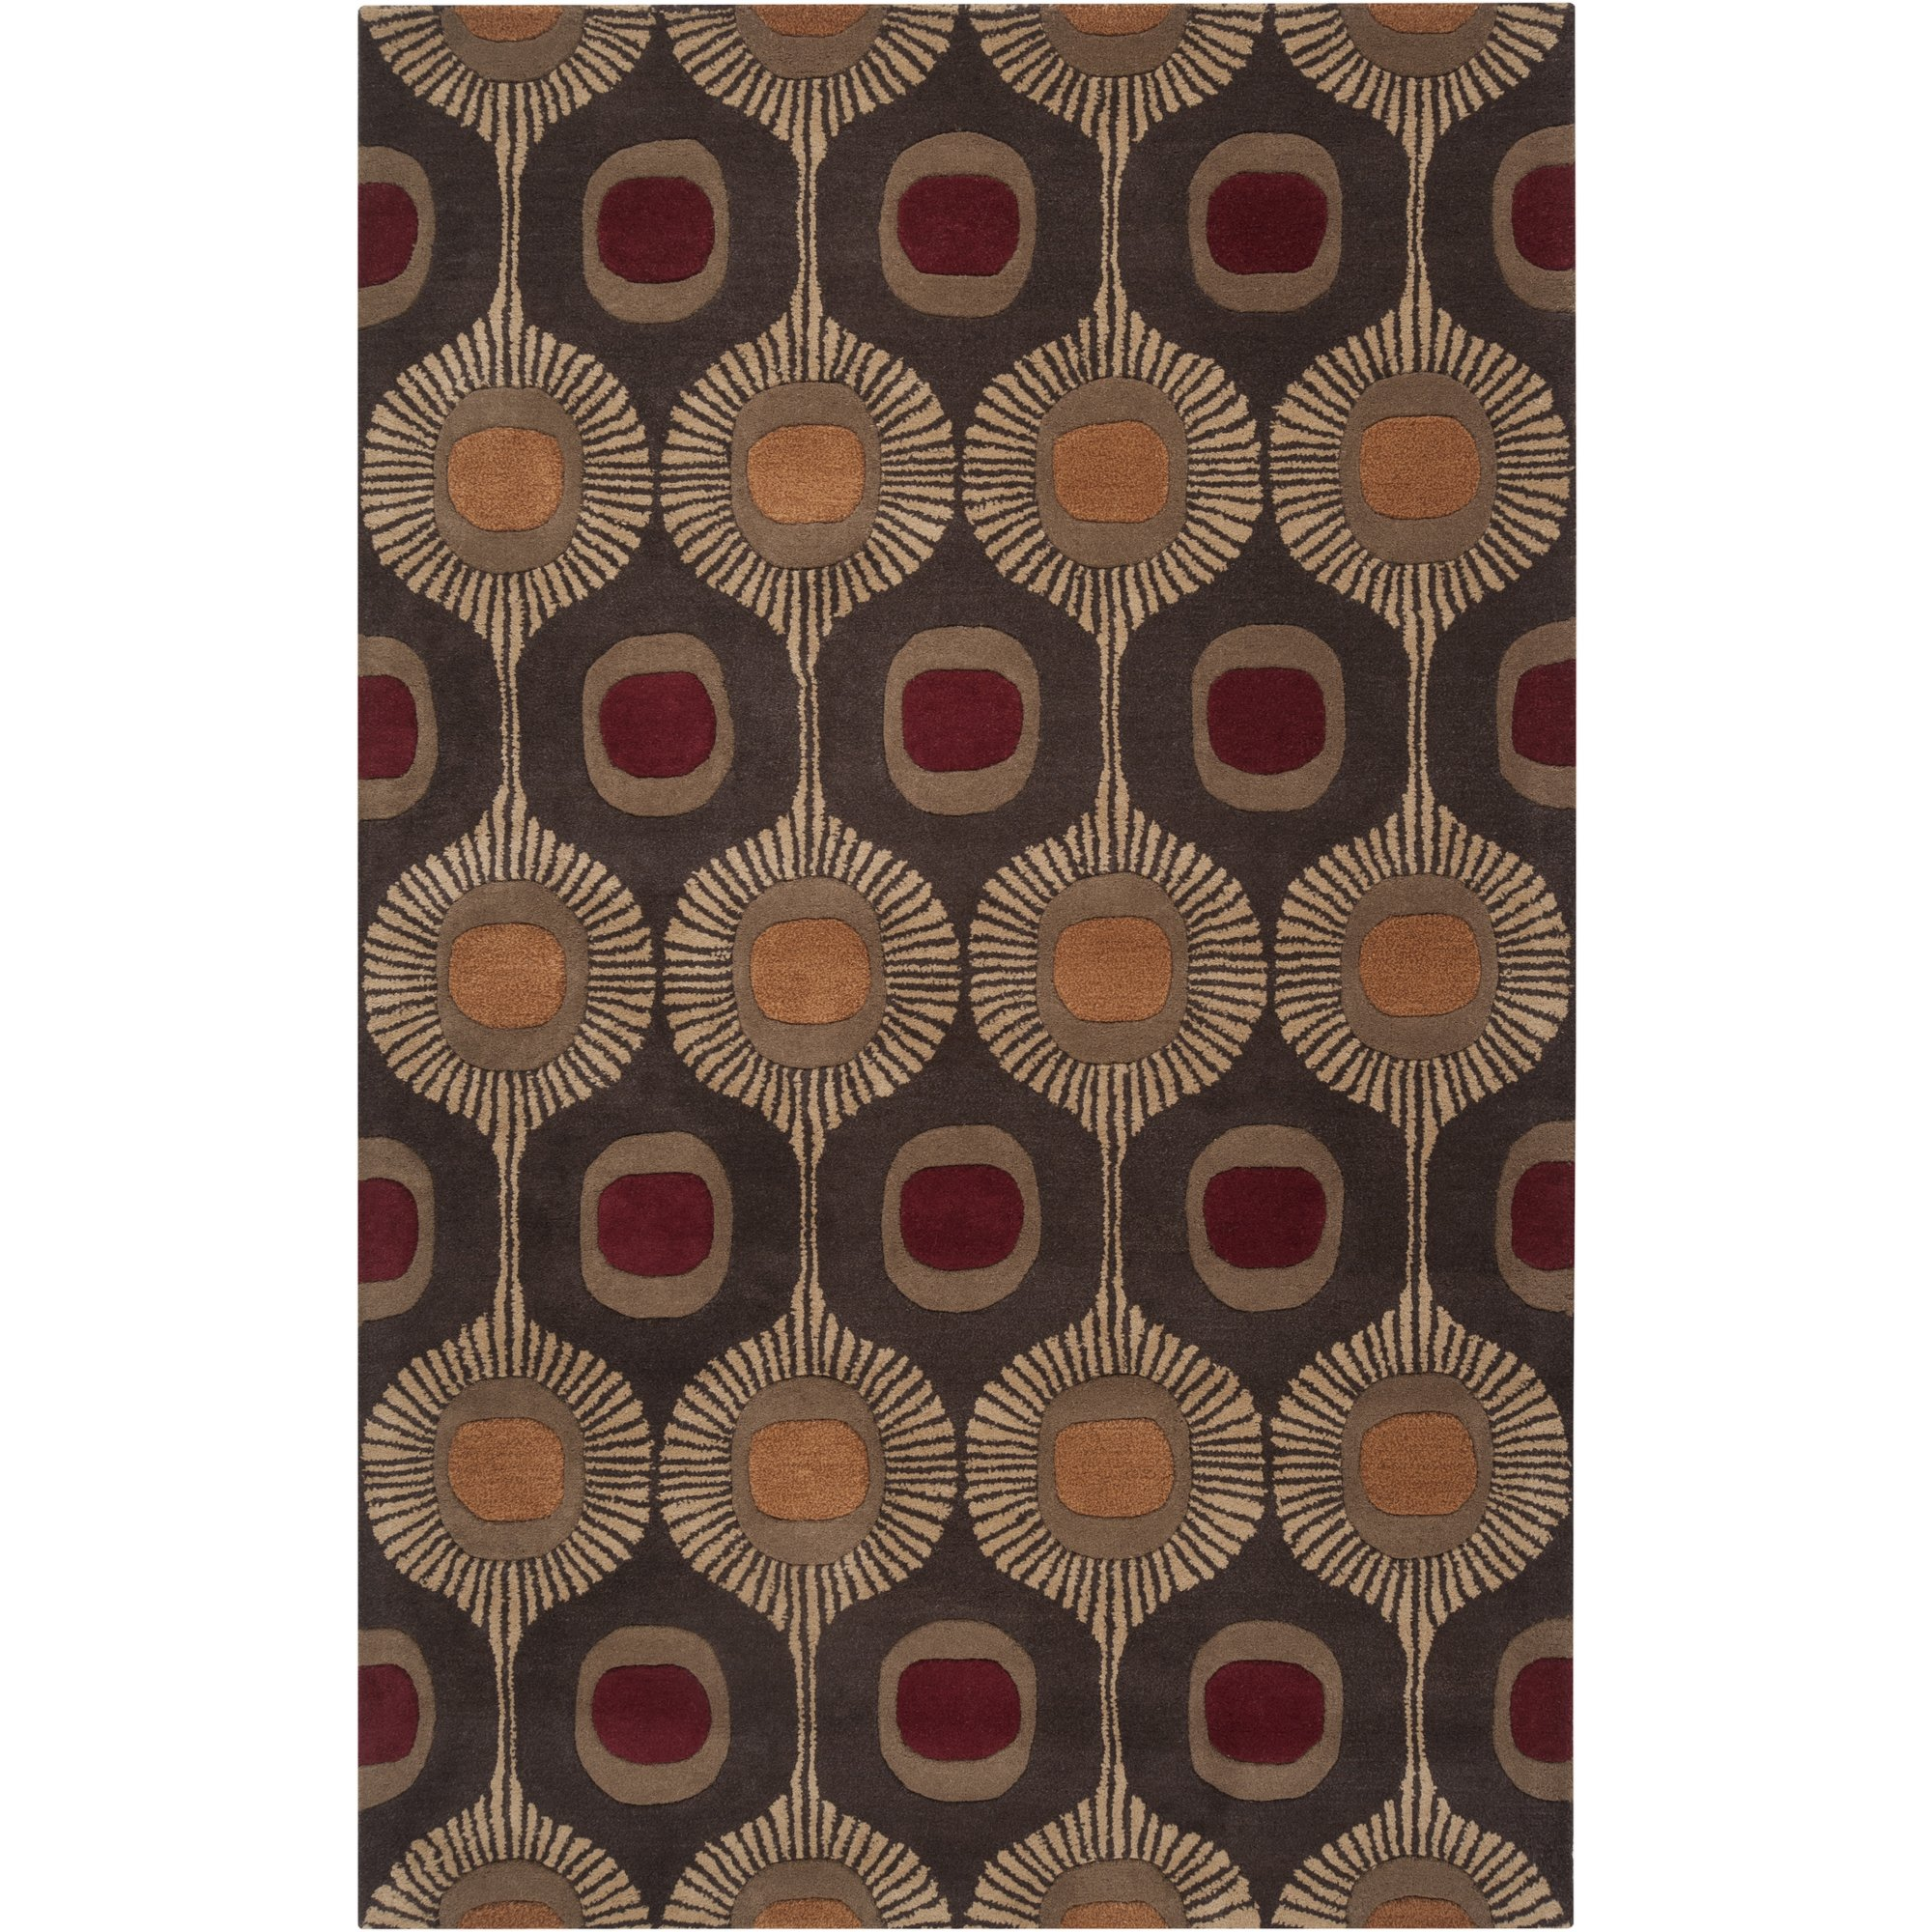 Surya Forum FM-7170 Transitional Hand Tufted 100% Wool Dark Chocolate 2'6'' x 8' Global Runner